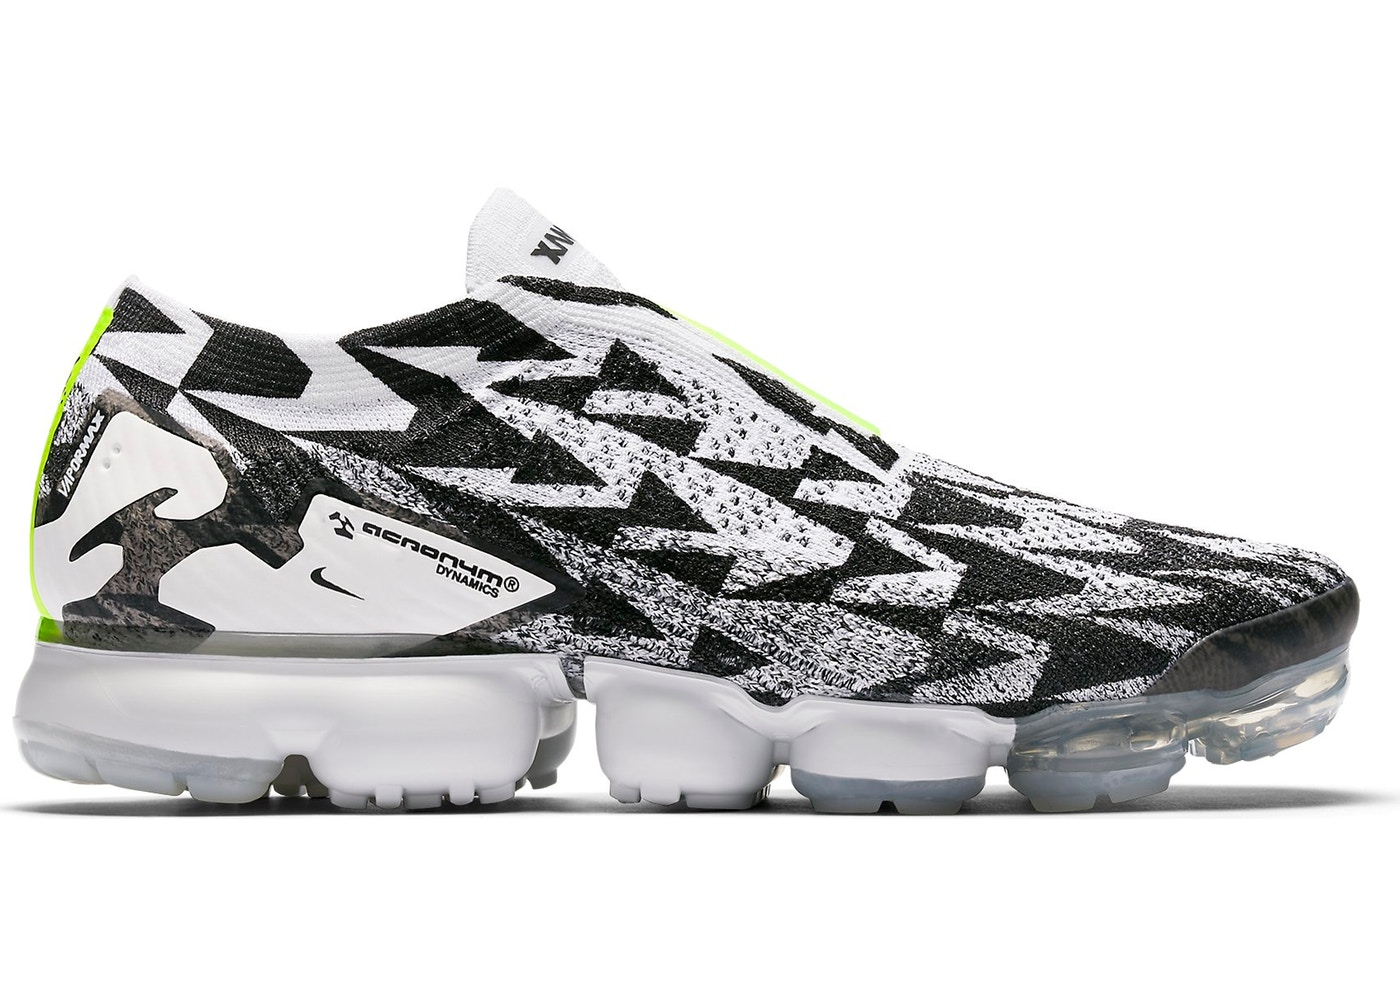 d73ff5ee084 Air VaporMax Moc 2 Acronym Light Bone - AQ0996-001